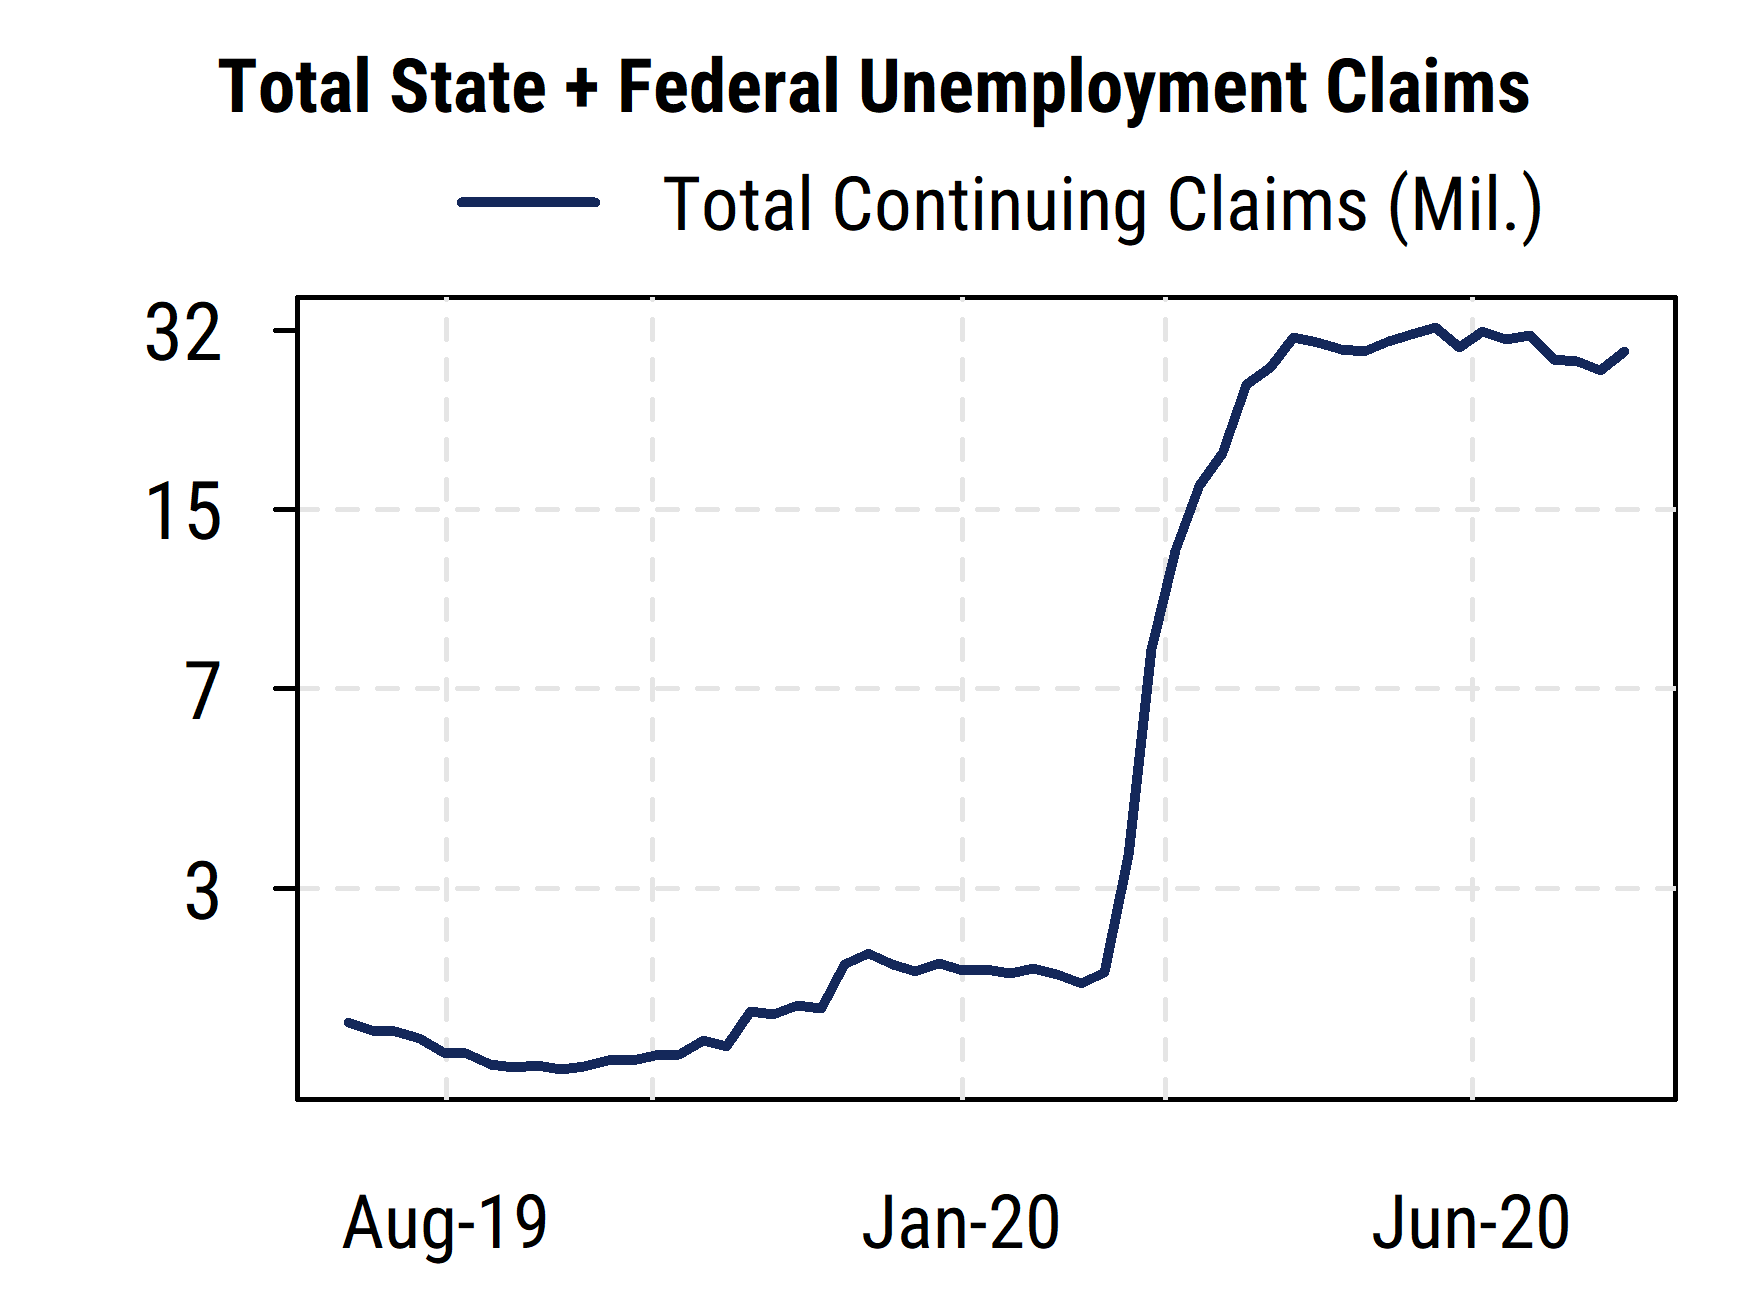 Total Unemployment Claims